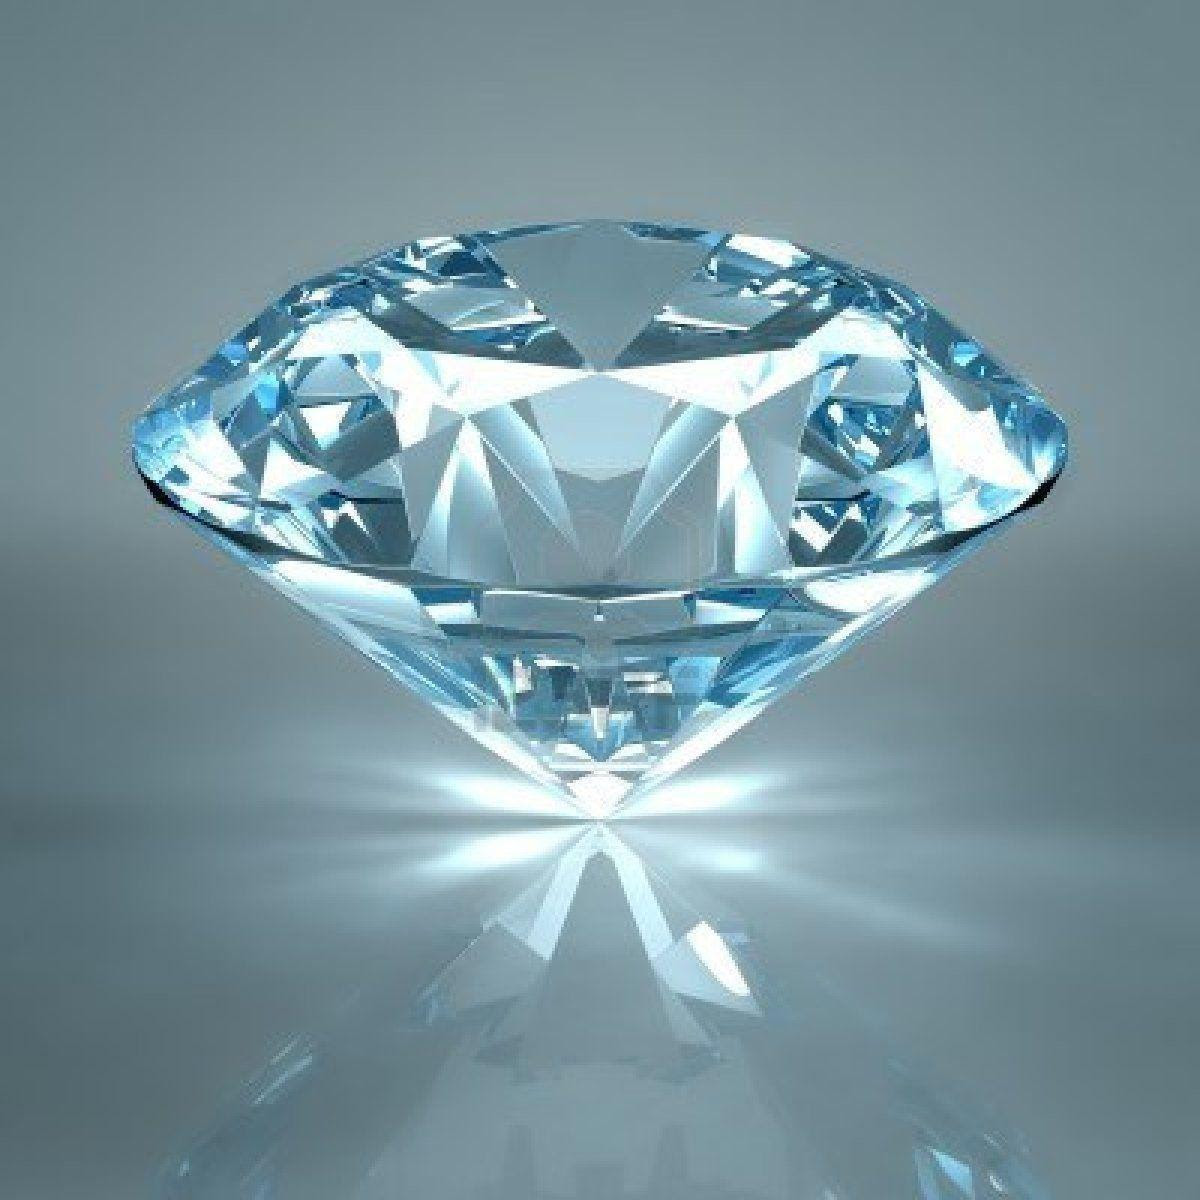 Diamond Backgrounds Image  Wallpaper Cave